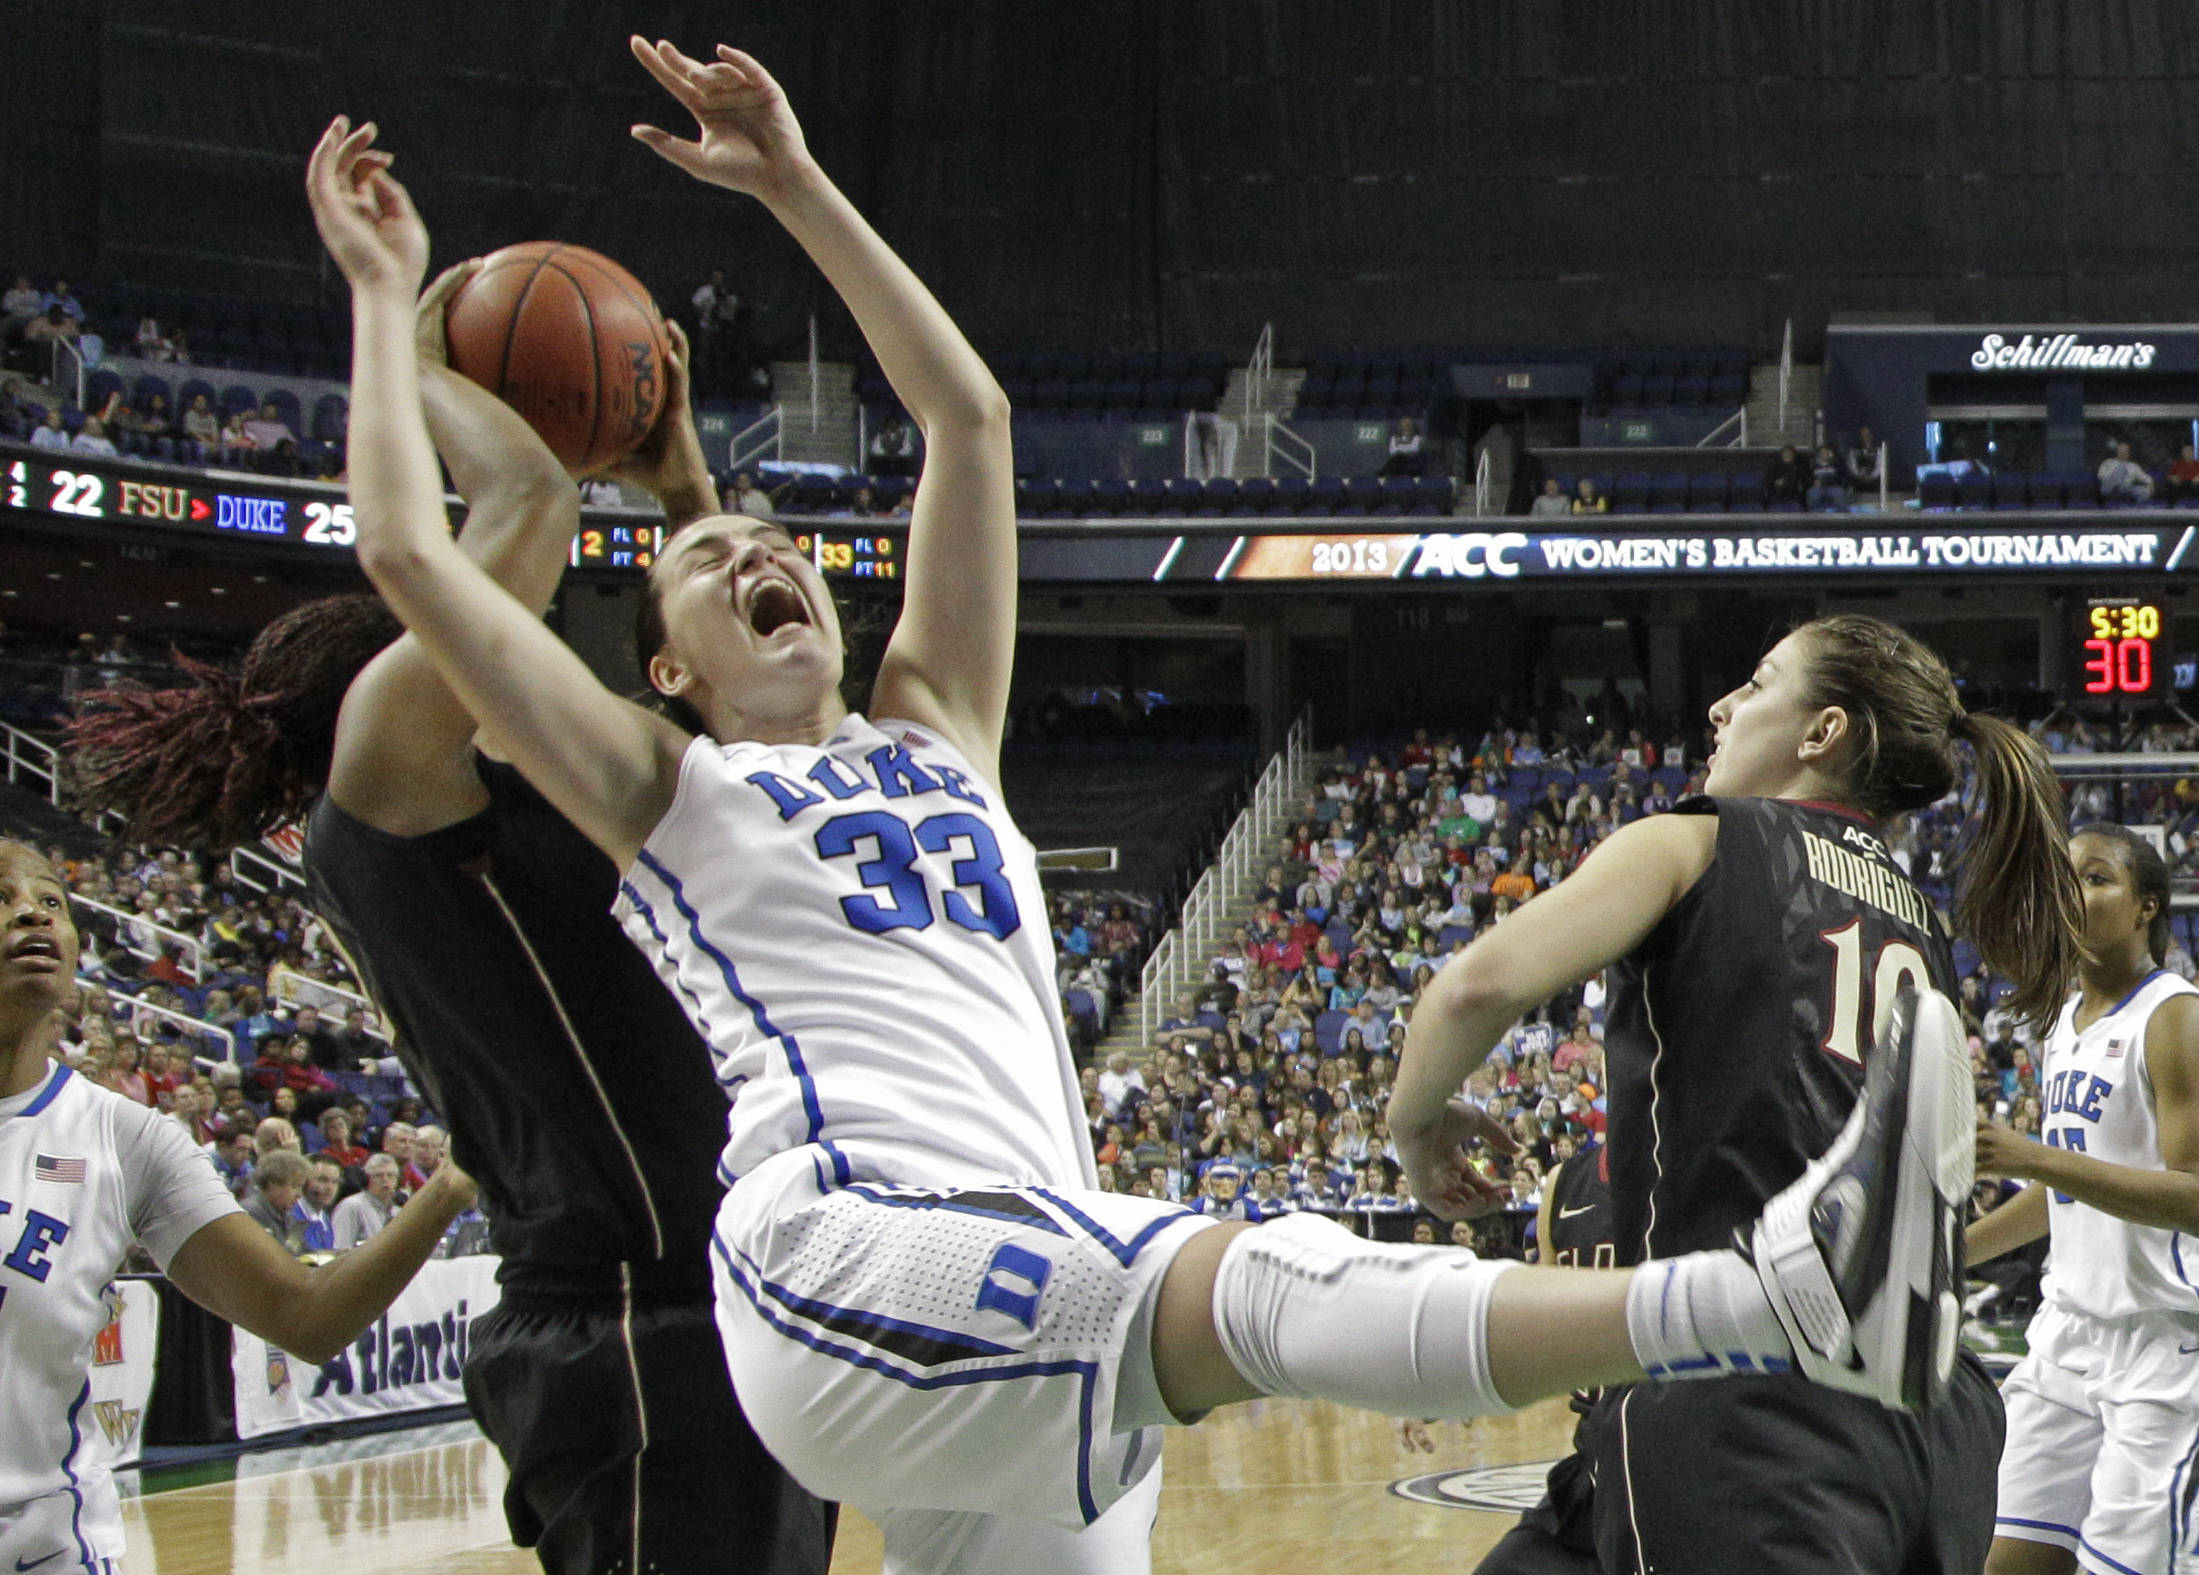 Duke's Haley Peters (33) loses the ball as she drives between Florida State's Leonor Rodriguez (10) and Lauren Coleman (32). (AP Photo/Chuck Burton)